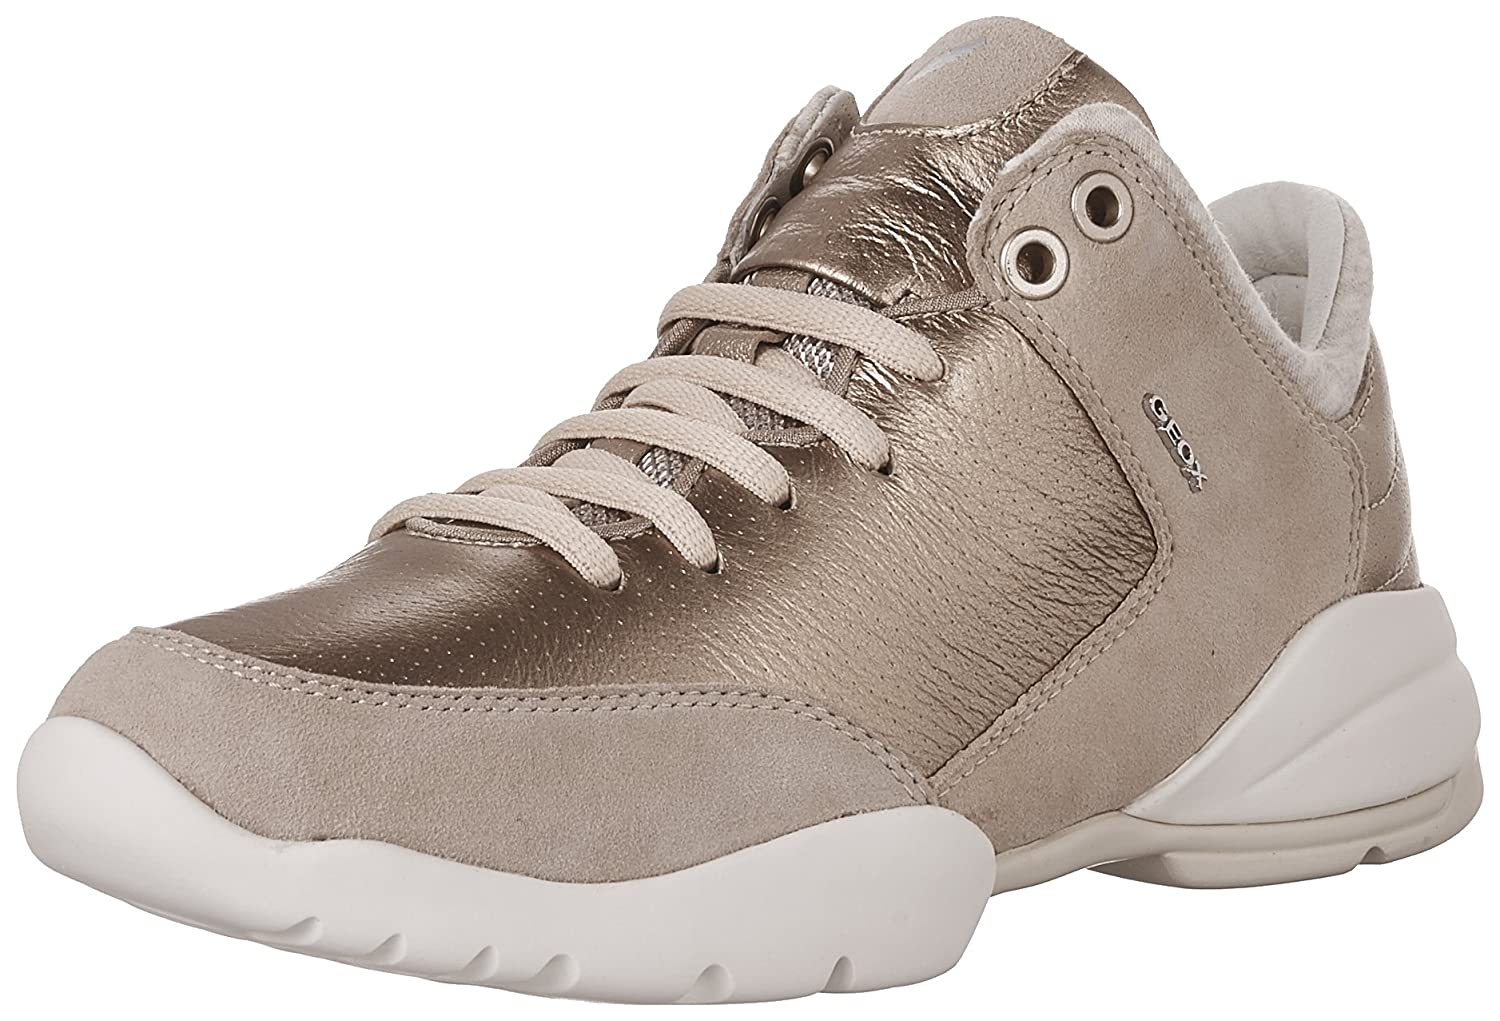 Champagner Geox D Sfinge A, Hauszapatos para mujer